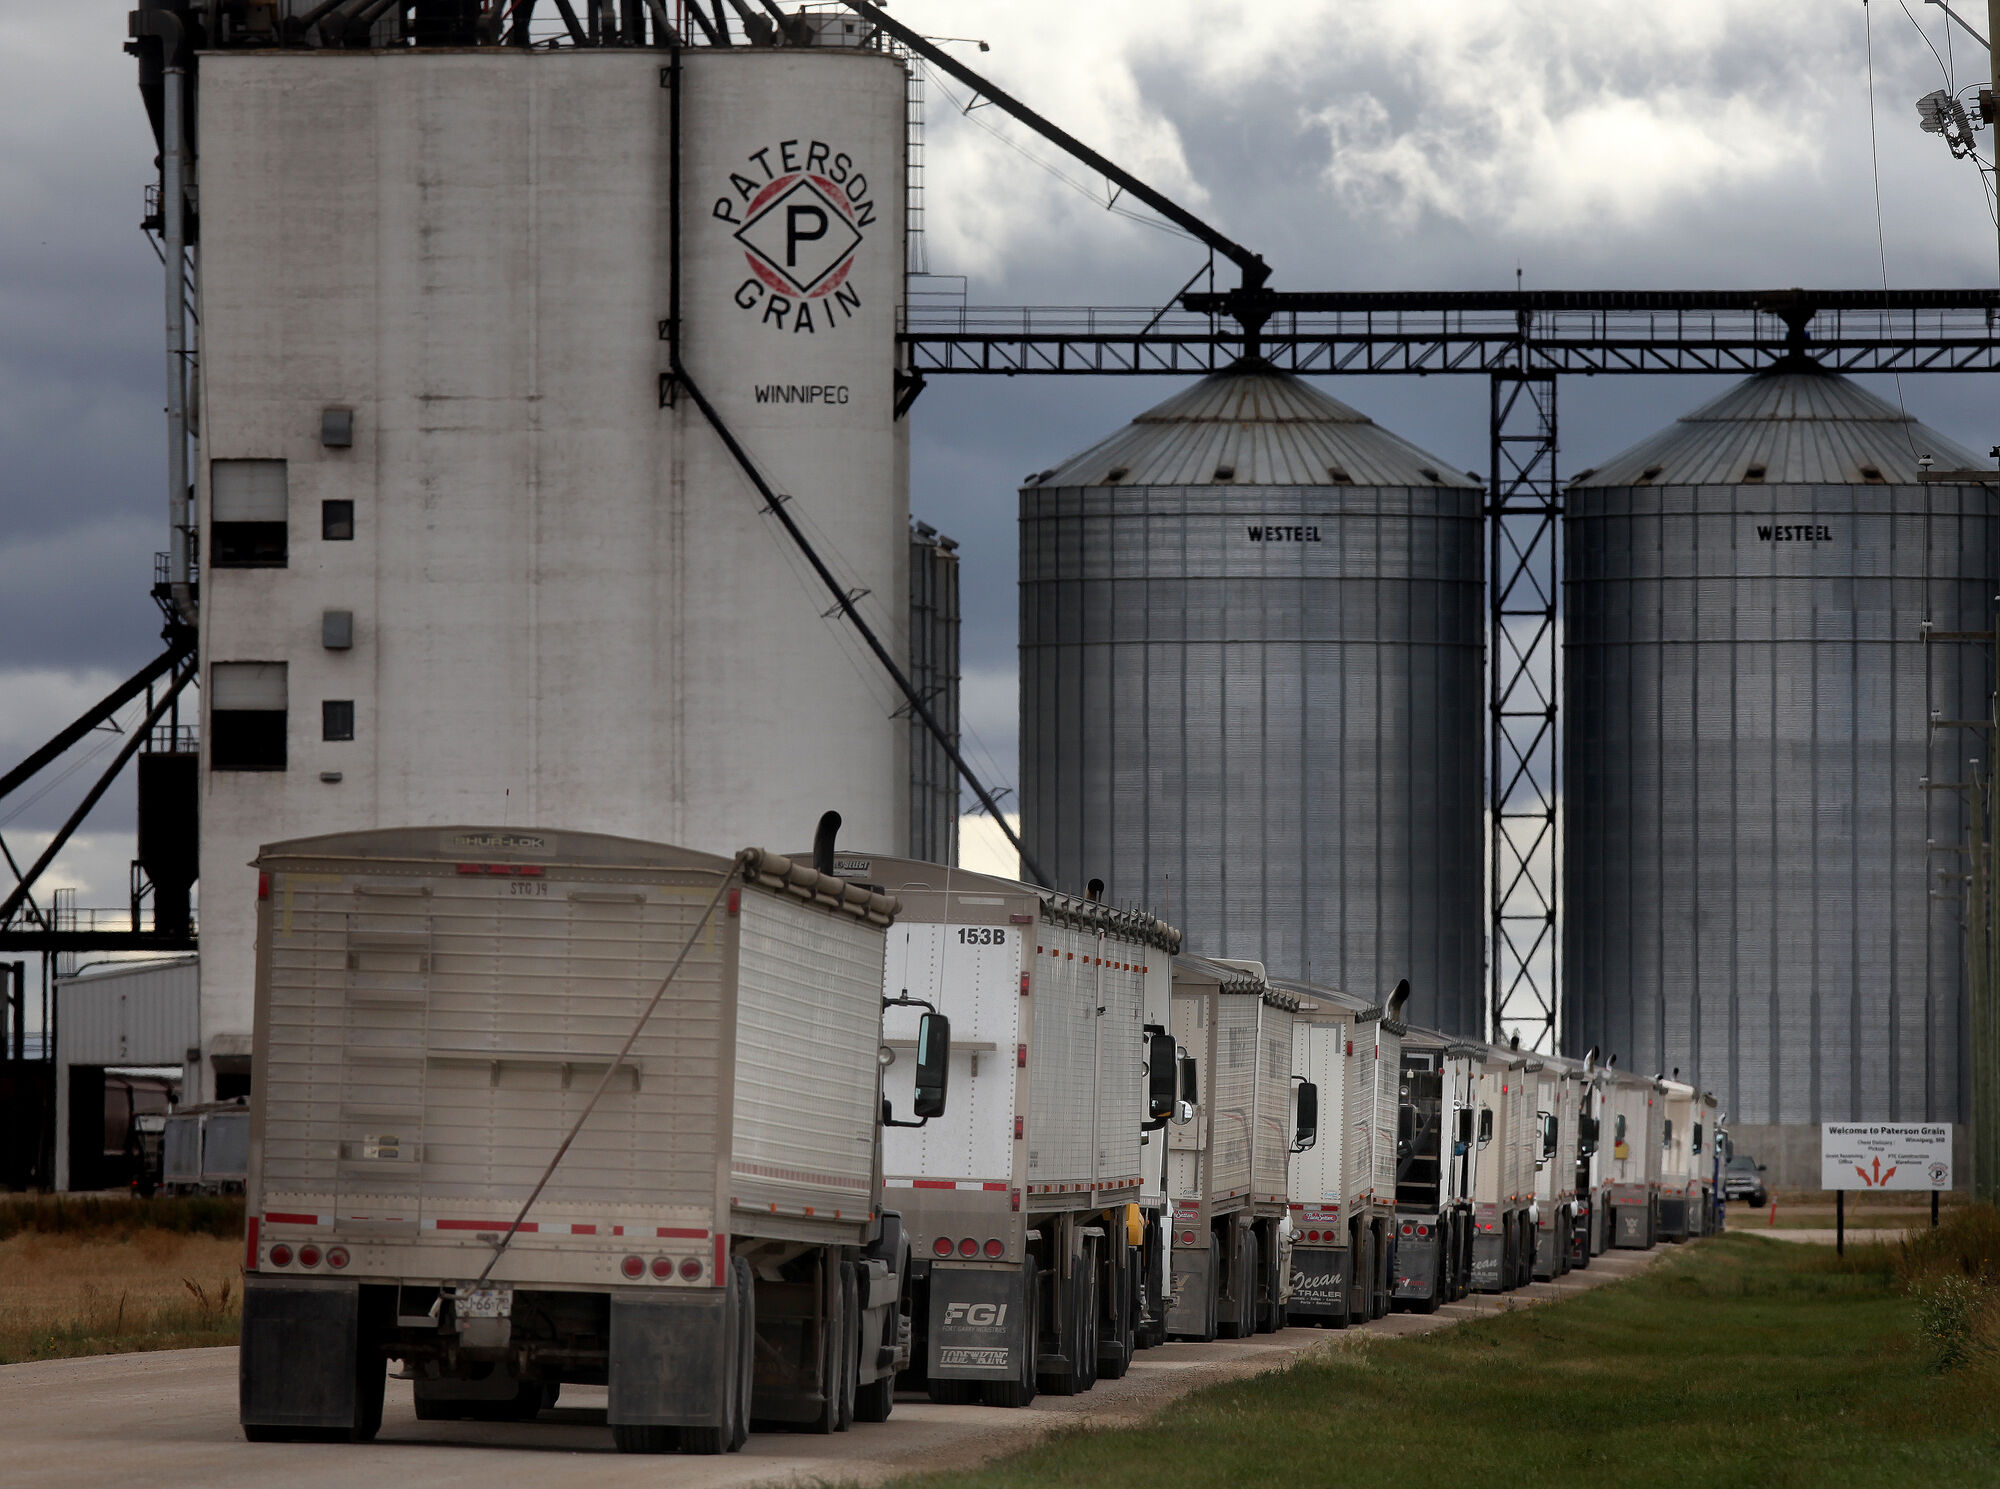 A shortage of rolling stock means farmers' grain won't get to market.